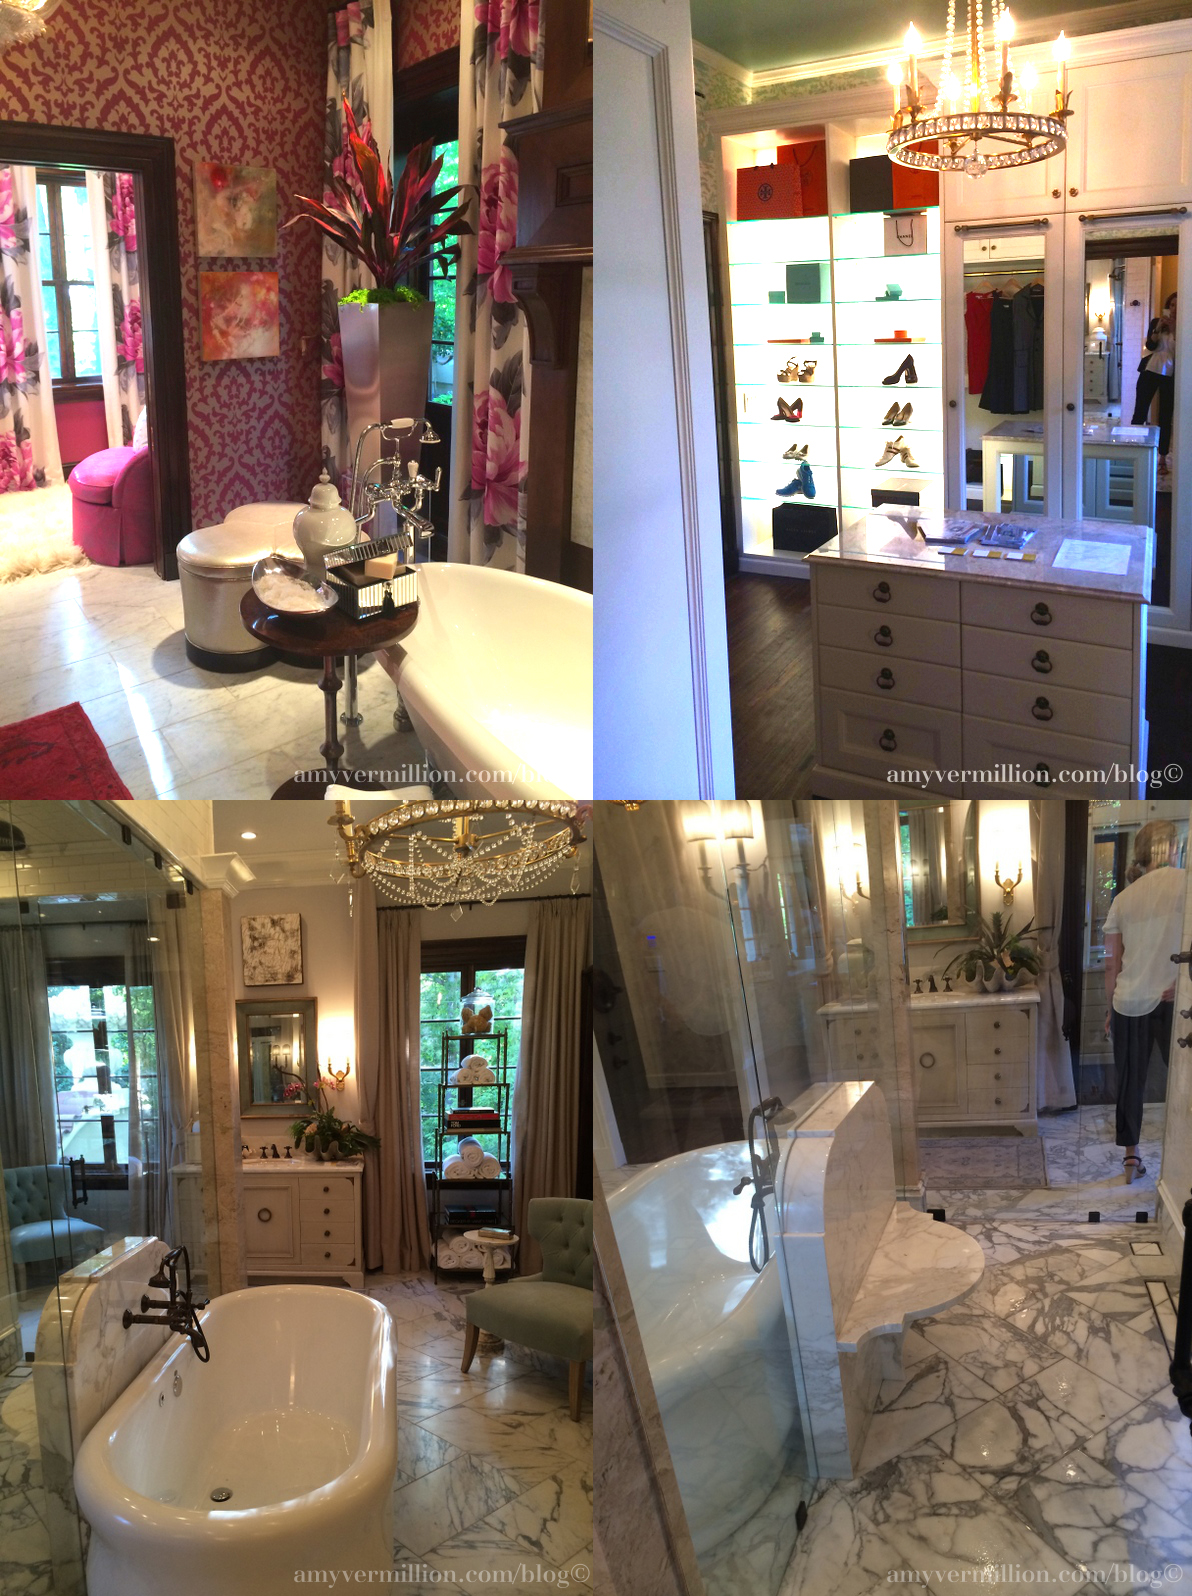 palazzo rosa atlanta decorators show house and gardens interiors better decorating bible southern mansion pink walls flower curtains dresing room pretty girly bathroom marble tiles huge bathrub mirroed wall